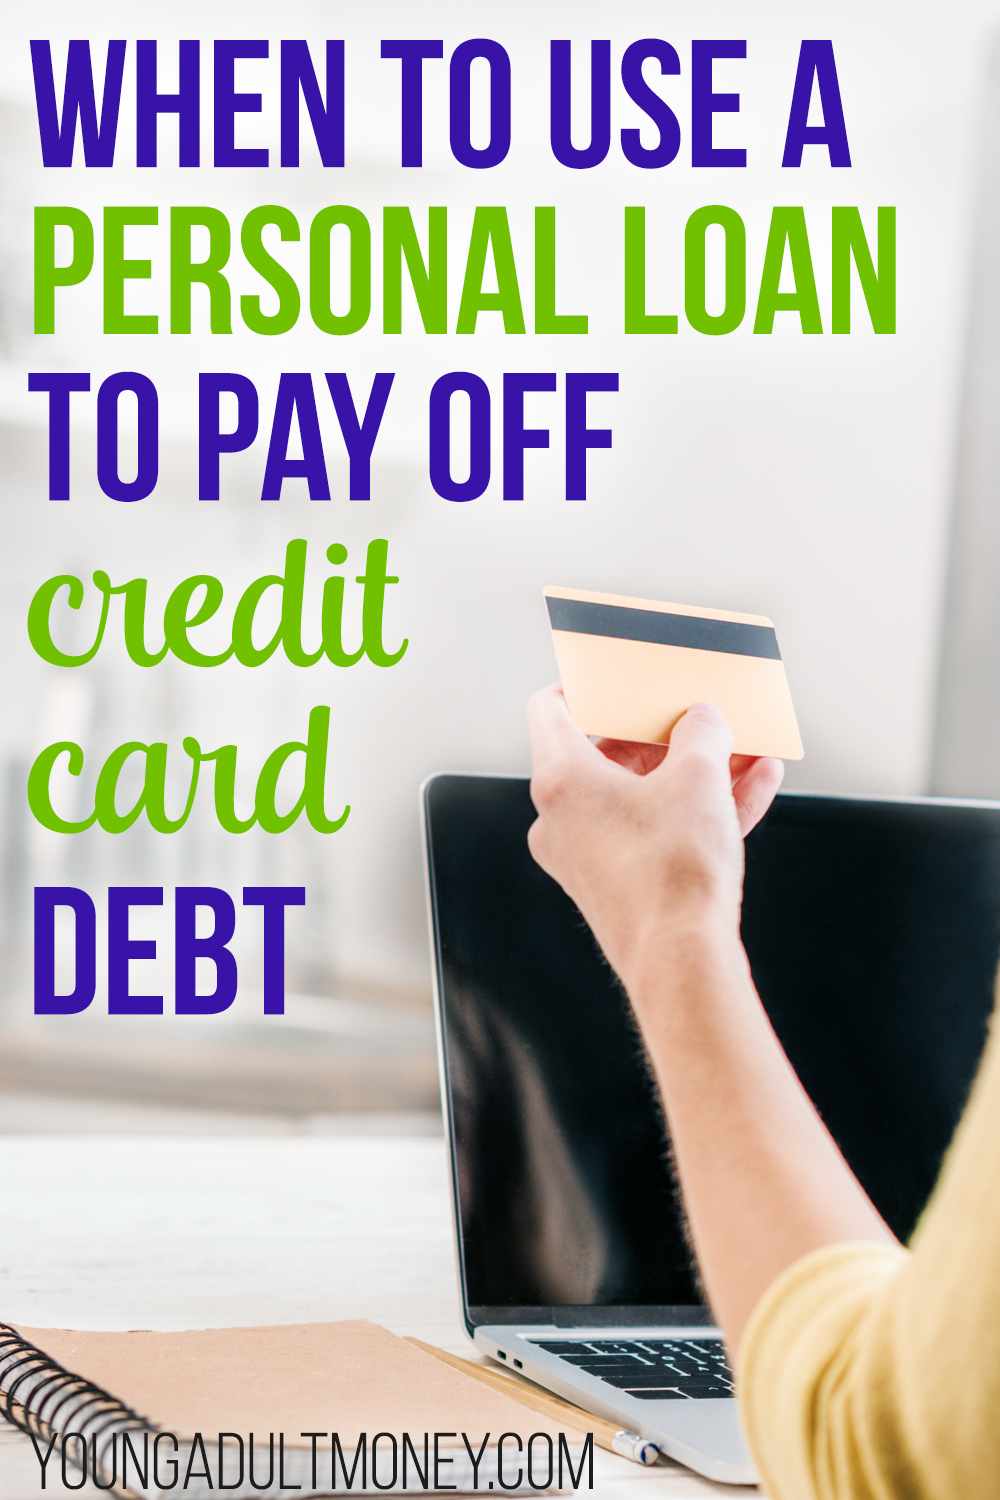 When To Use A Personal Loan To Pay Off Credit Card Debt In 2020 Paying Off Credit Cards Personal Loans Credit Card Transfer